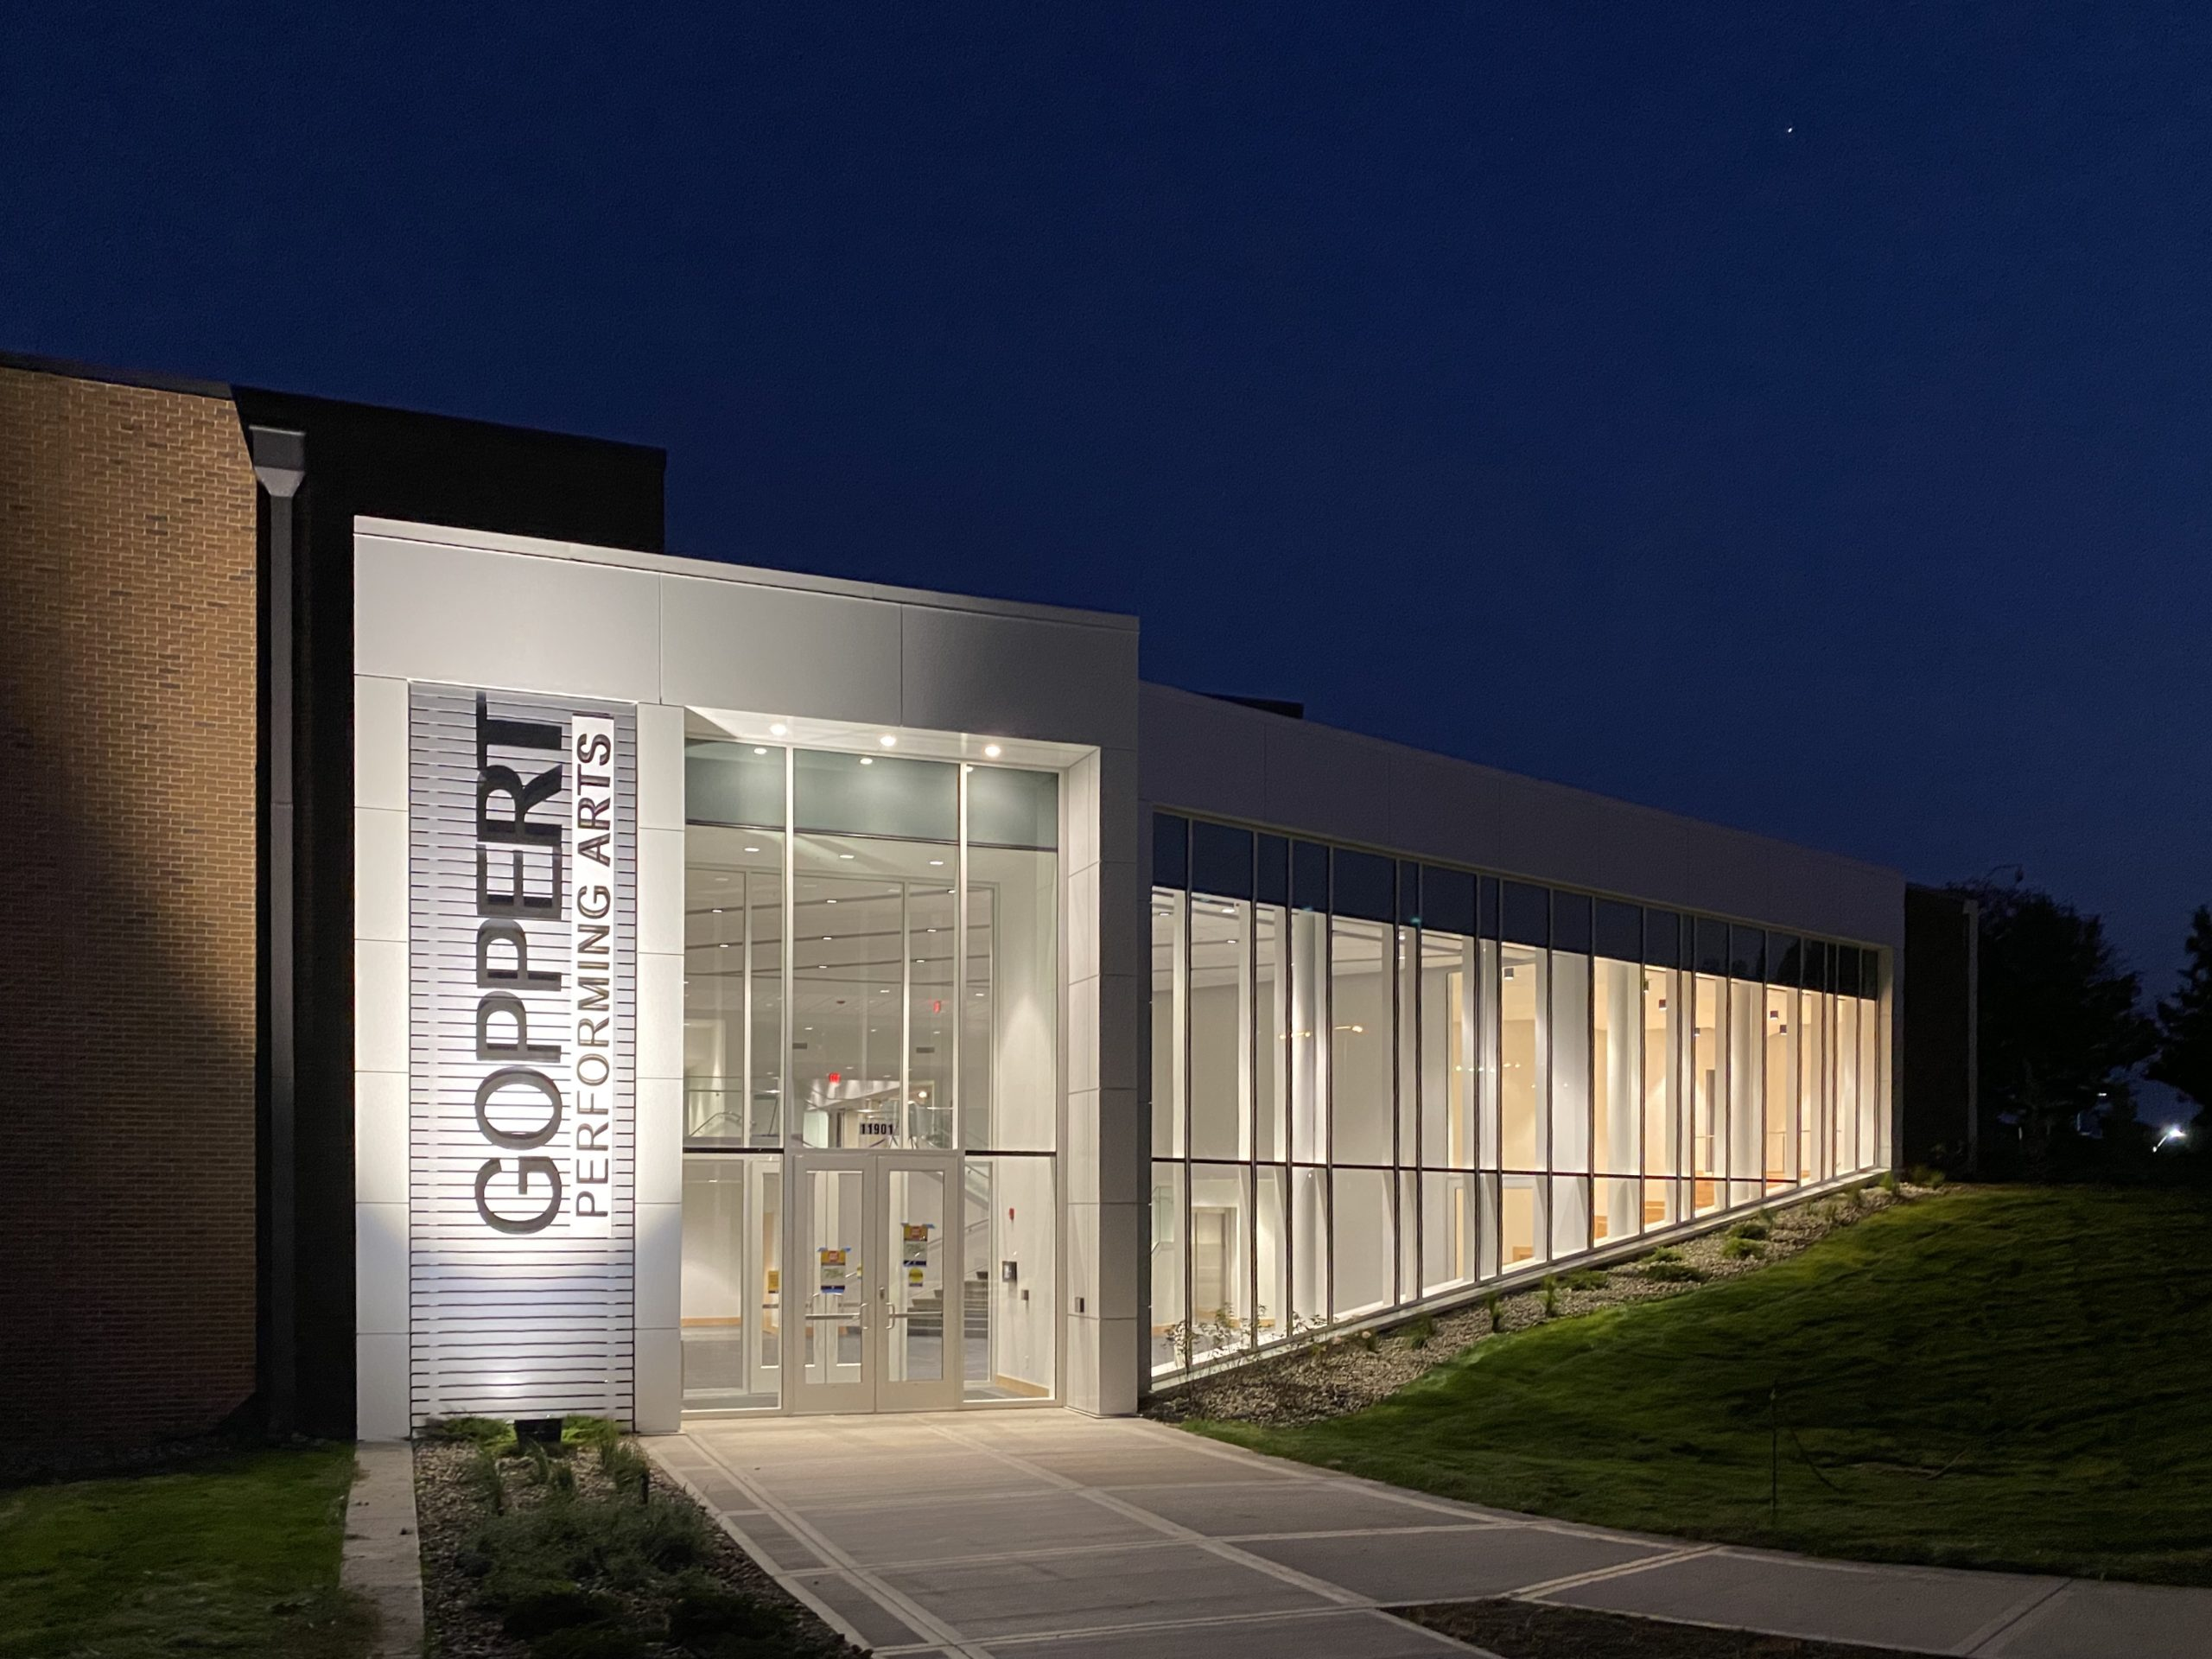 Goppert Performing Arts Center entrance at night